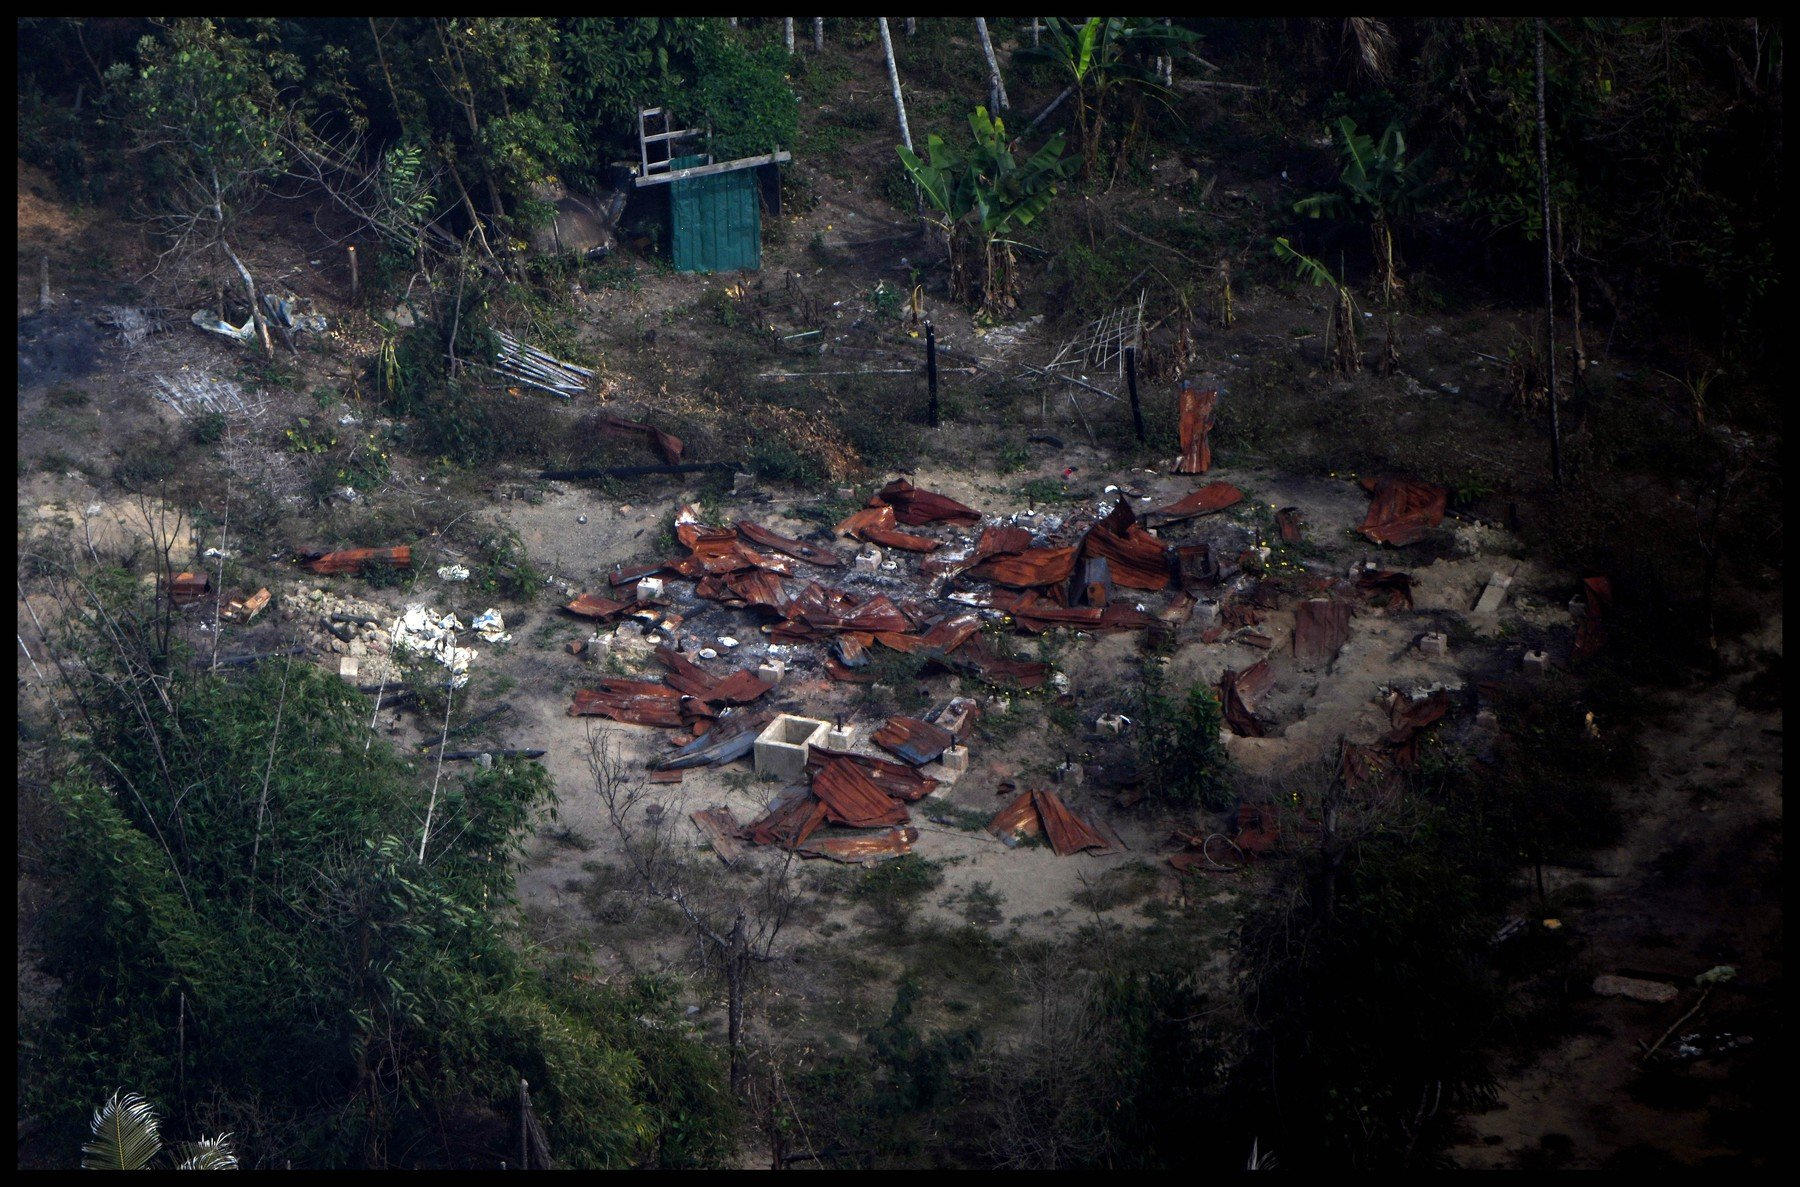 February 11, 2018 - Northern Rakhine, Northern Rakhine, United Kingdom - Northern Rakhine. Aerial pictures taken Febriury 11th 2018, of Burnt out and destroyed villages taken from a helicopter on route to  Pan Daw Pyin village, Maungdaw, Northern Rakhine. Rohingya  who have fled Burma to refugee camps in Bangladesh  on the Burma border near Cox's Bazar., Image: 362968873, License: Rights-managed, Restrictions: * China, France, Italy, Spain, Taiwan and UK Rights OUT *, Model Release: no, Credit line: Profimedia, Zuma Press - Archives